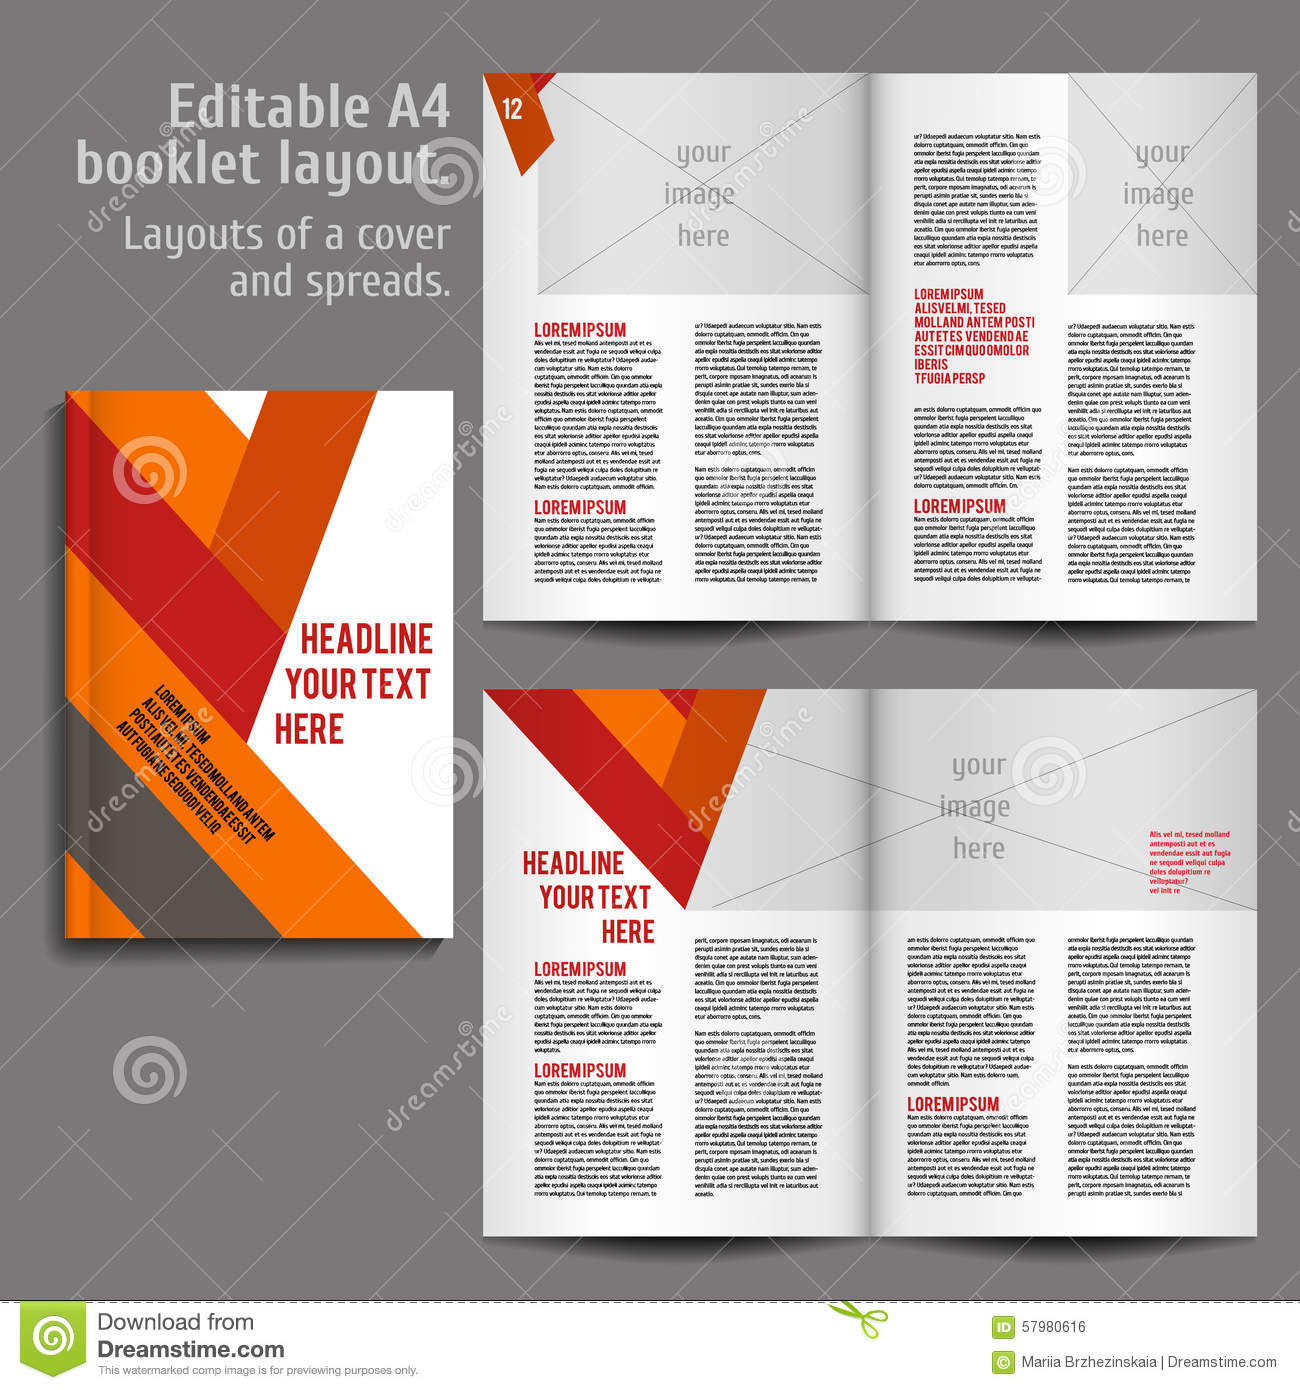 a4 book layout design template stock vector illustration of layout